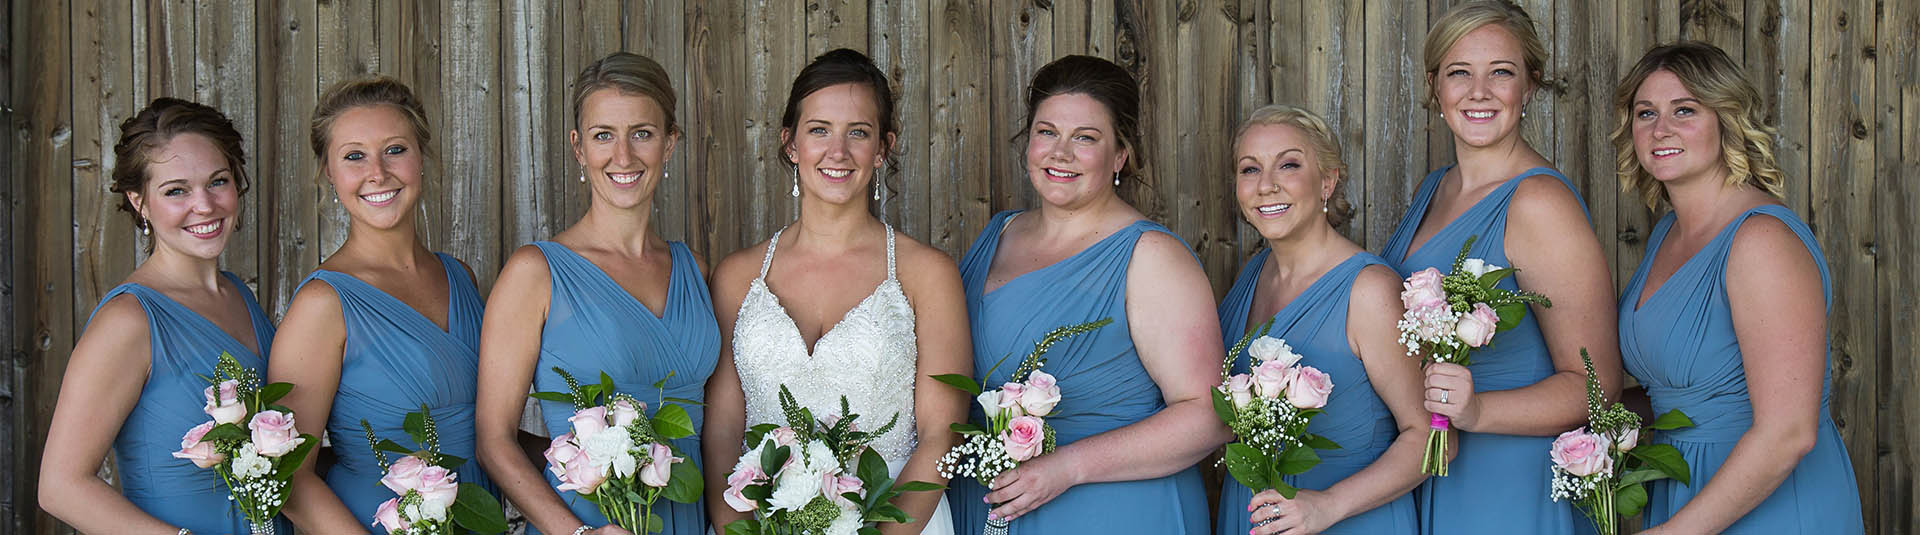 A bride and her bridesmaids pose in front of a fence at Catamount Country Club